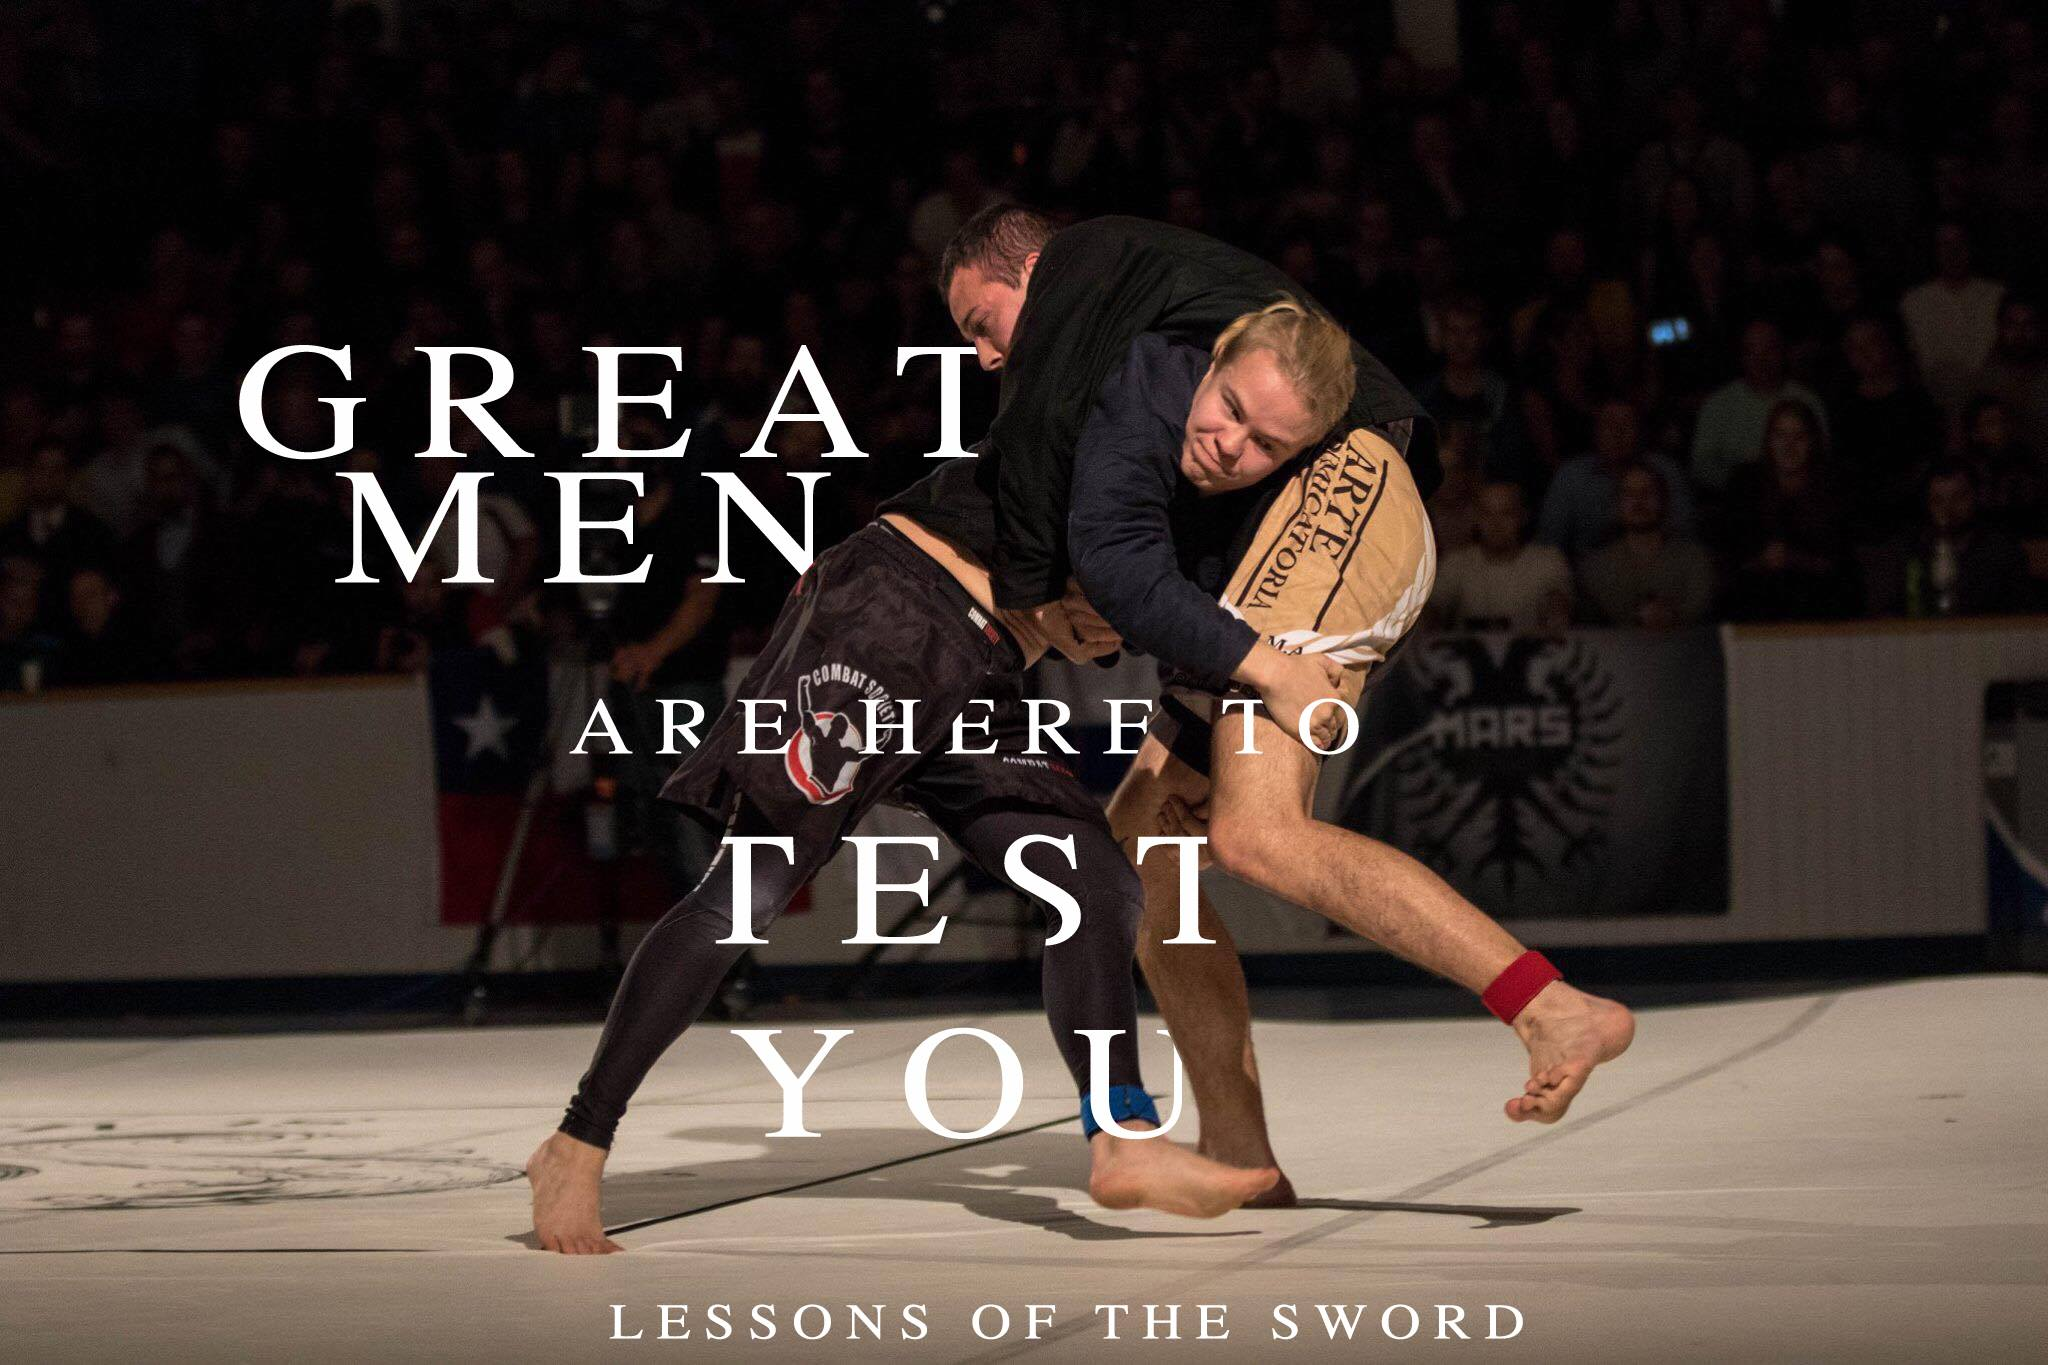 Lessons of the Sword: Great men are here to test you